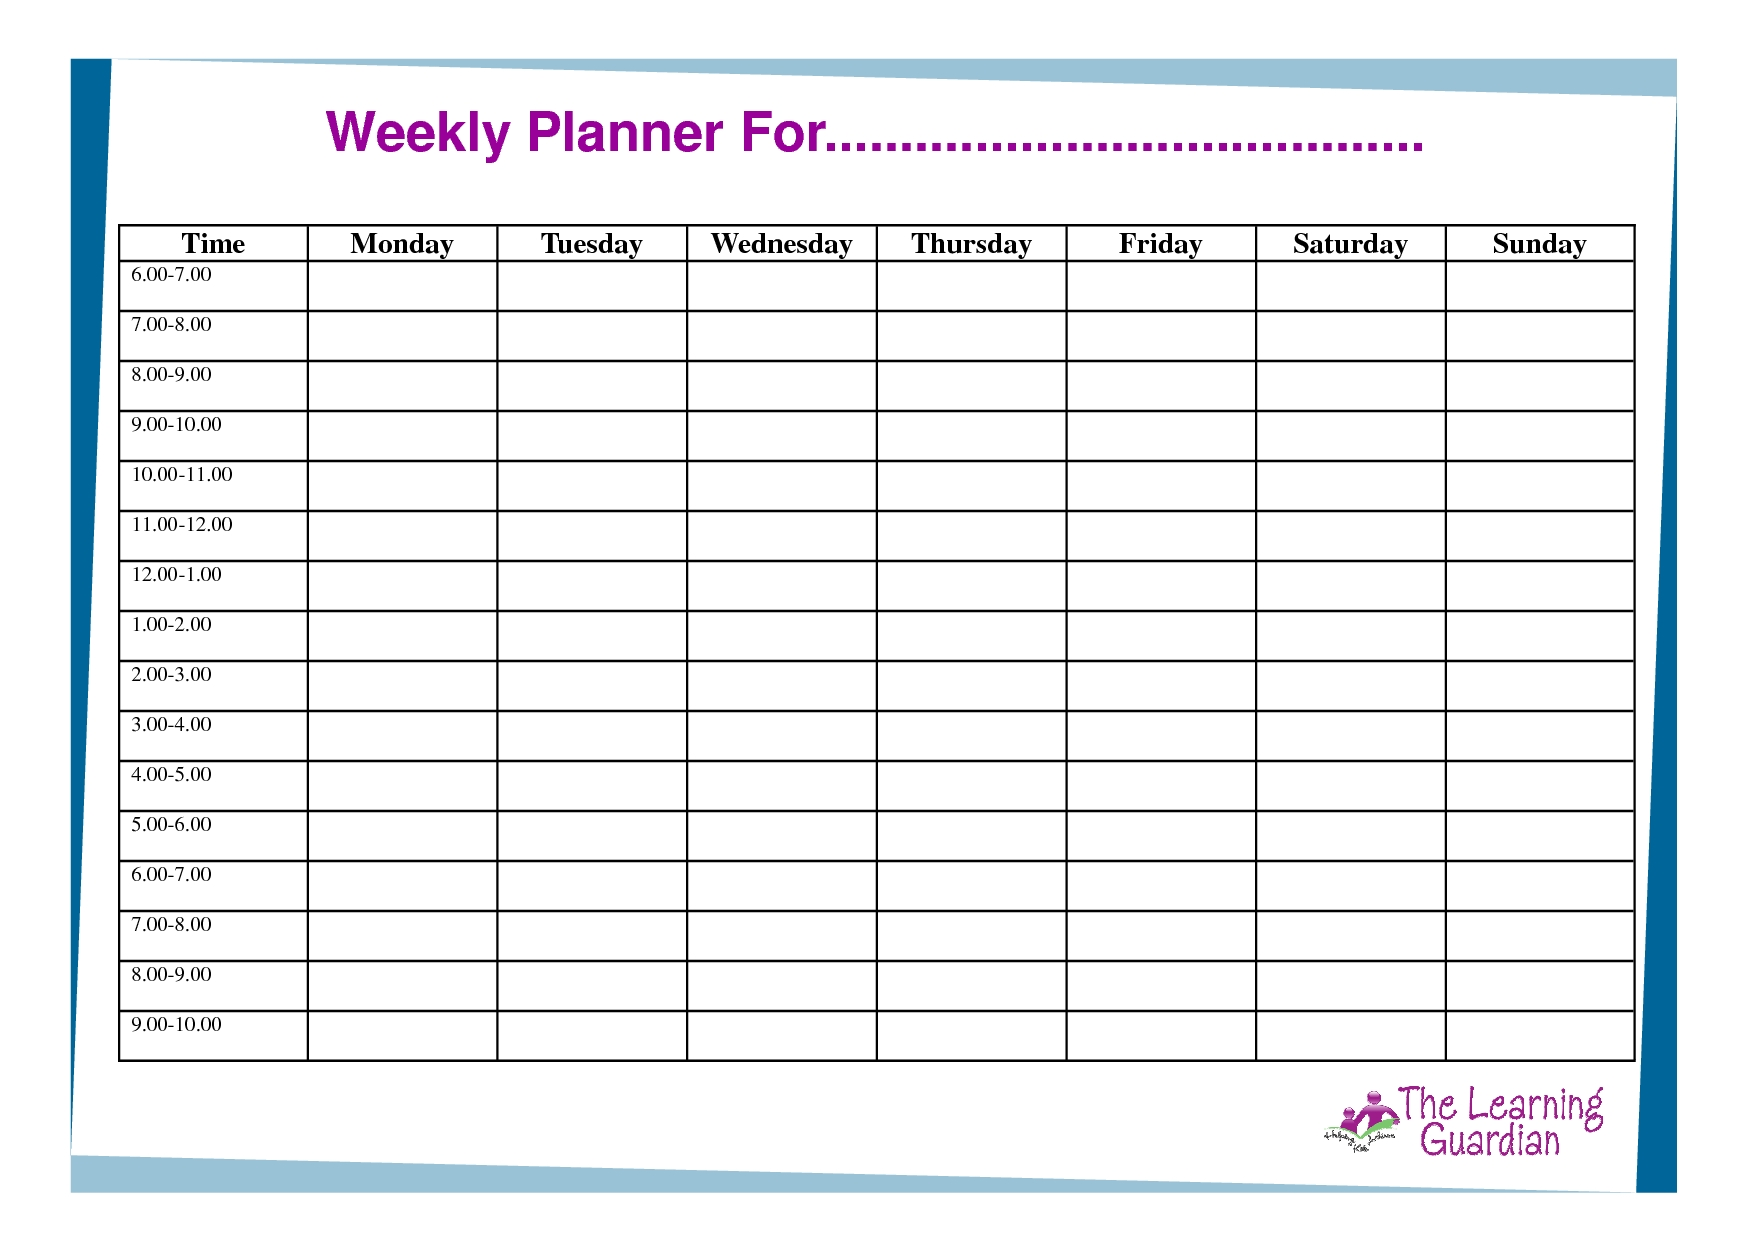 free printable weekly planner templates in 2020 | weekly